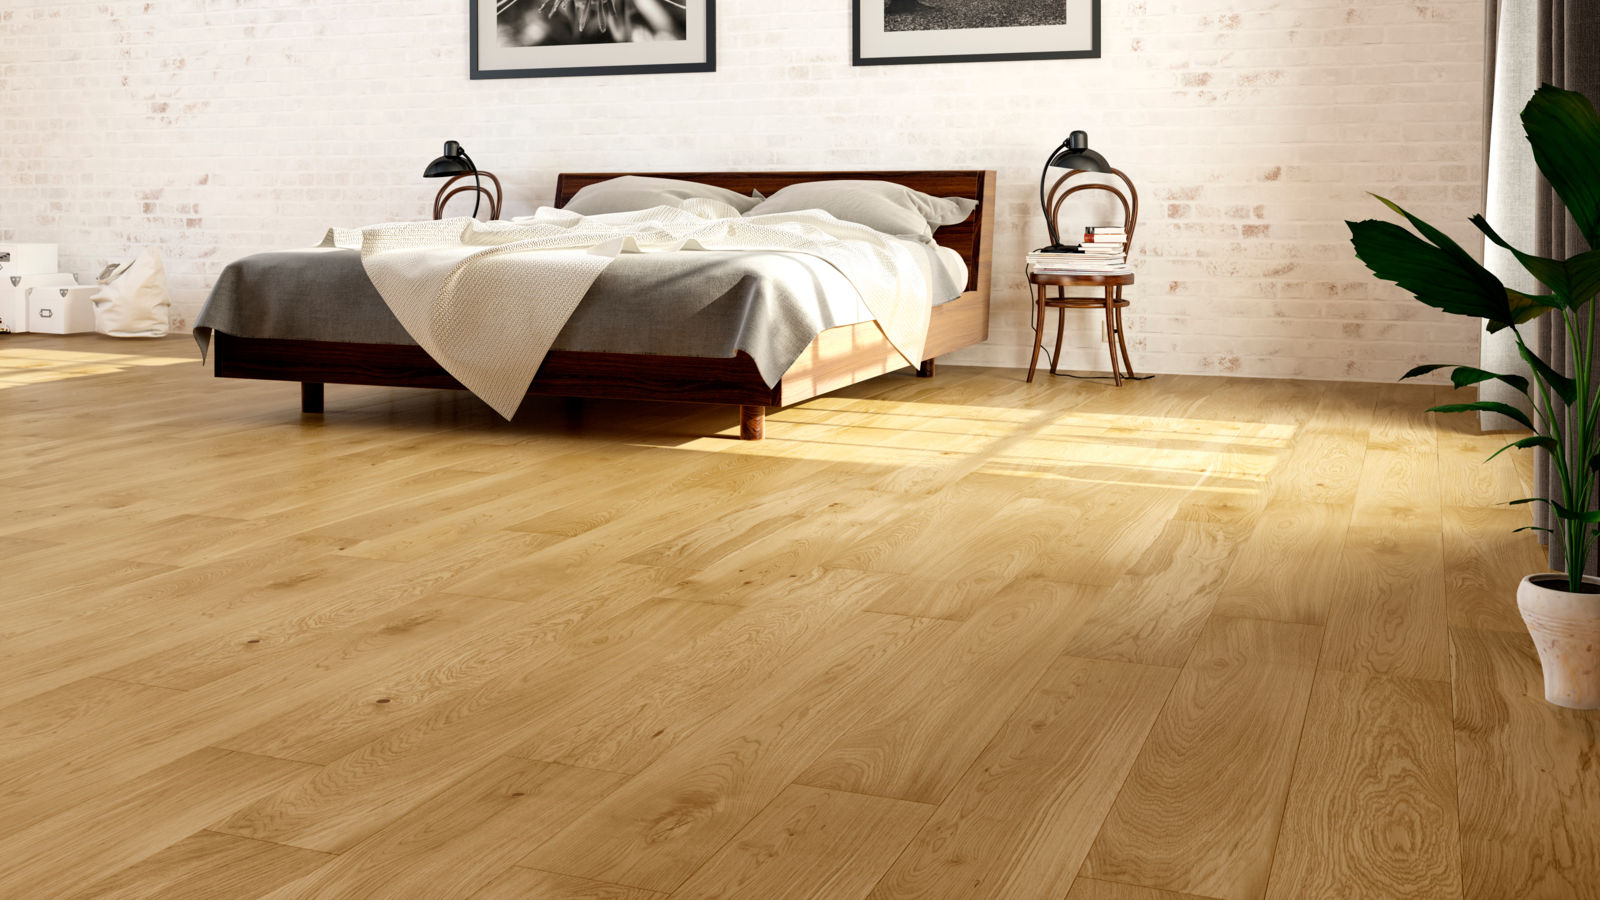 Wood flooring services wood flooring manufacturers for Engineered wood flooring philippines